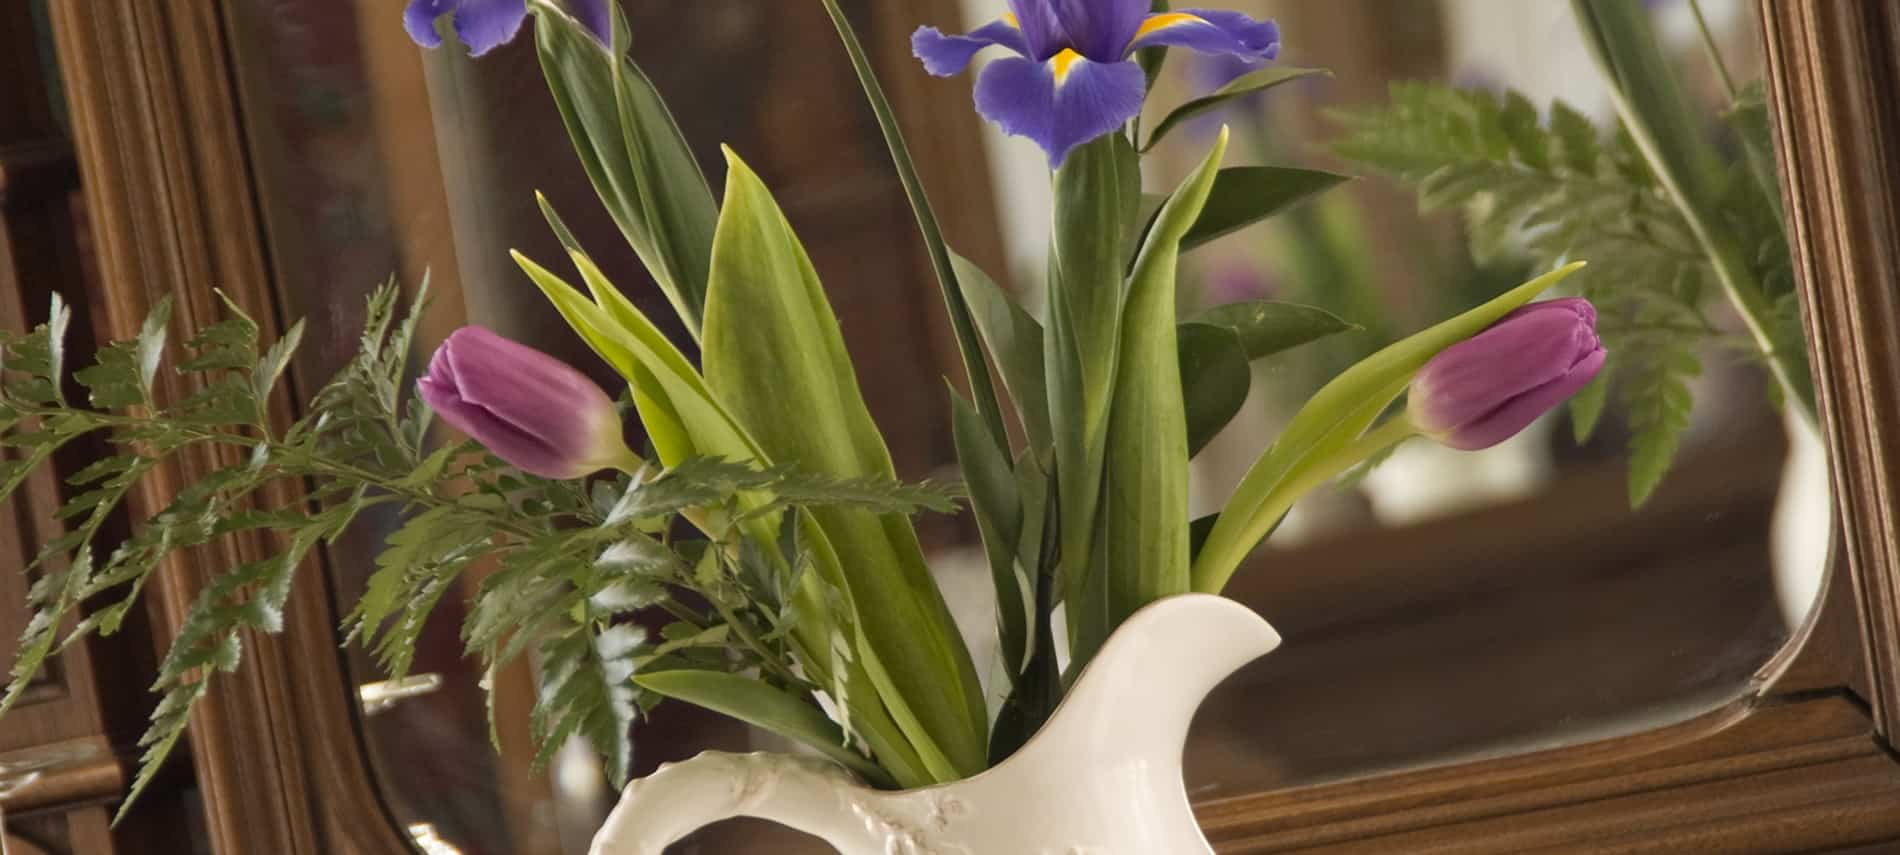 White vase filled with mauve and purple and yellow flowers with green stems and leaves